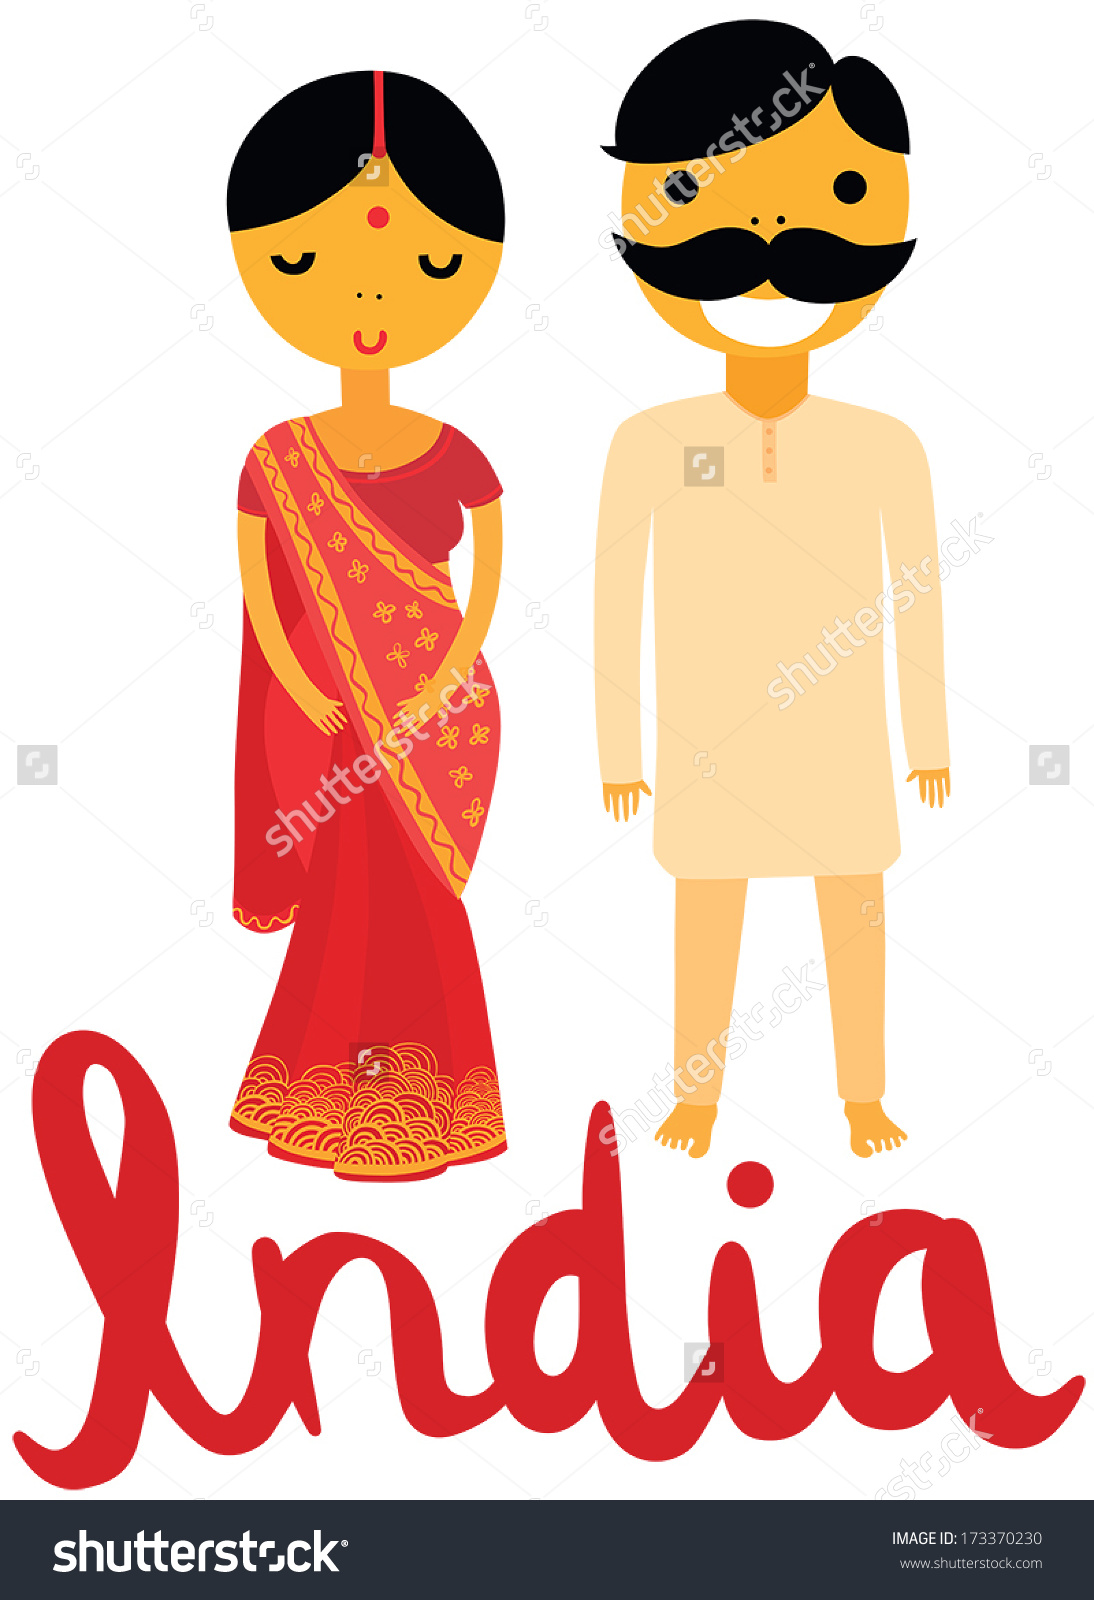 Indian traditional dress clipart graphic library download Indian Woman Man Traditional Clothing Stock Vector 173370230 ... graphic library download